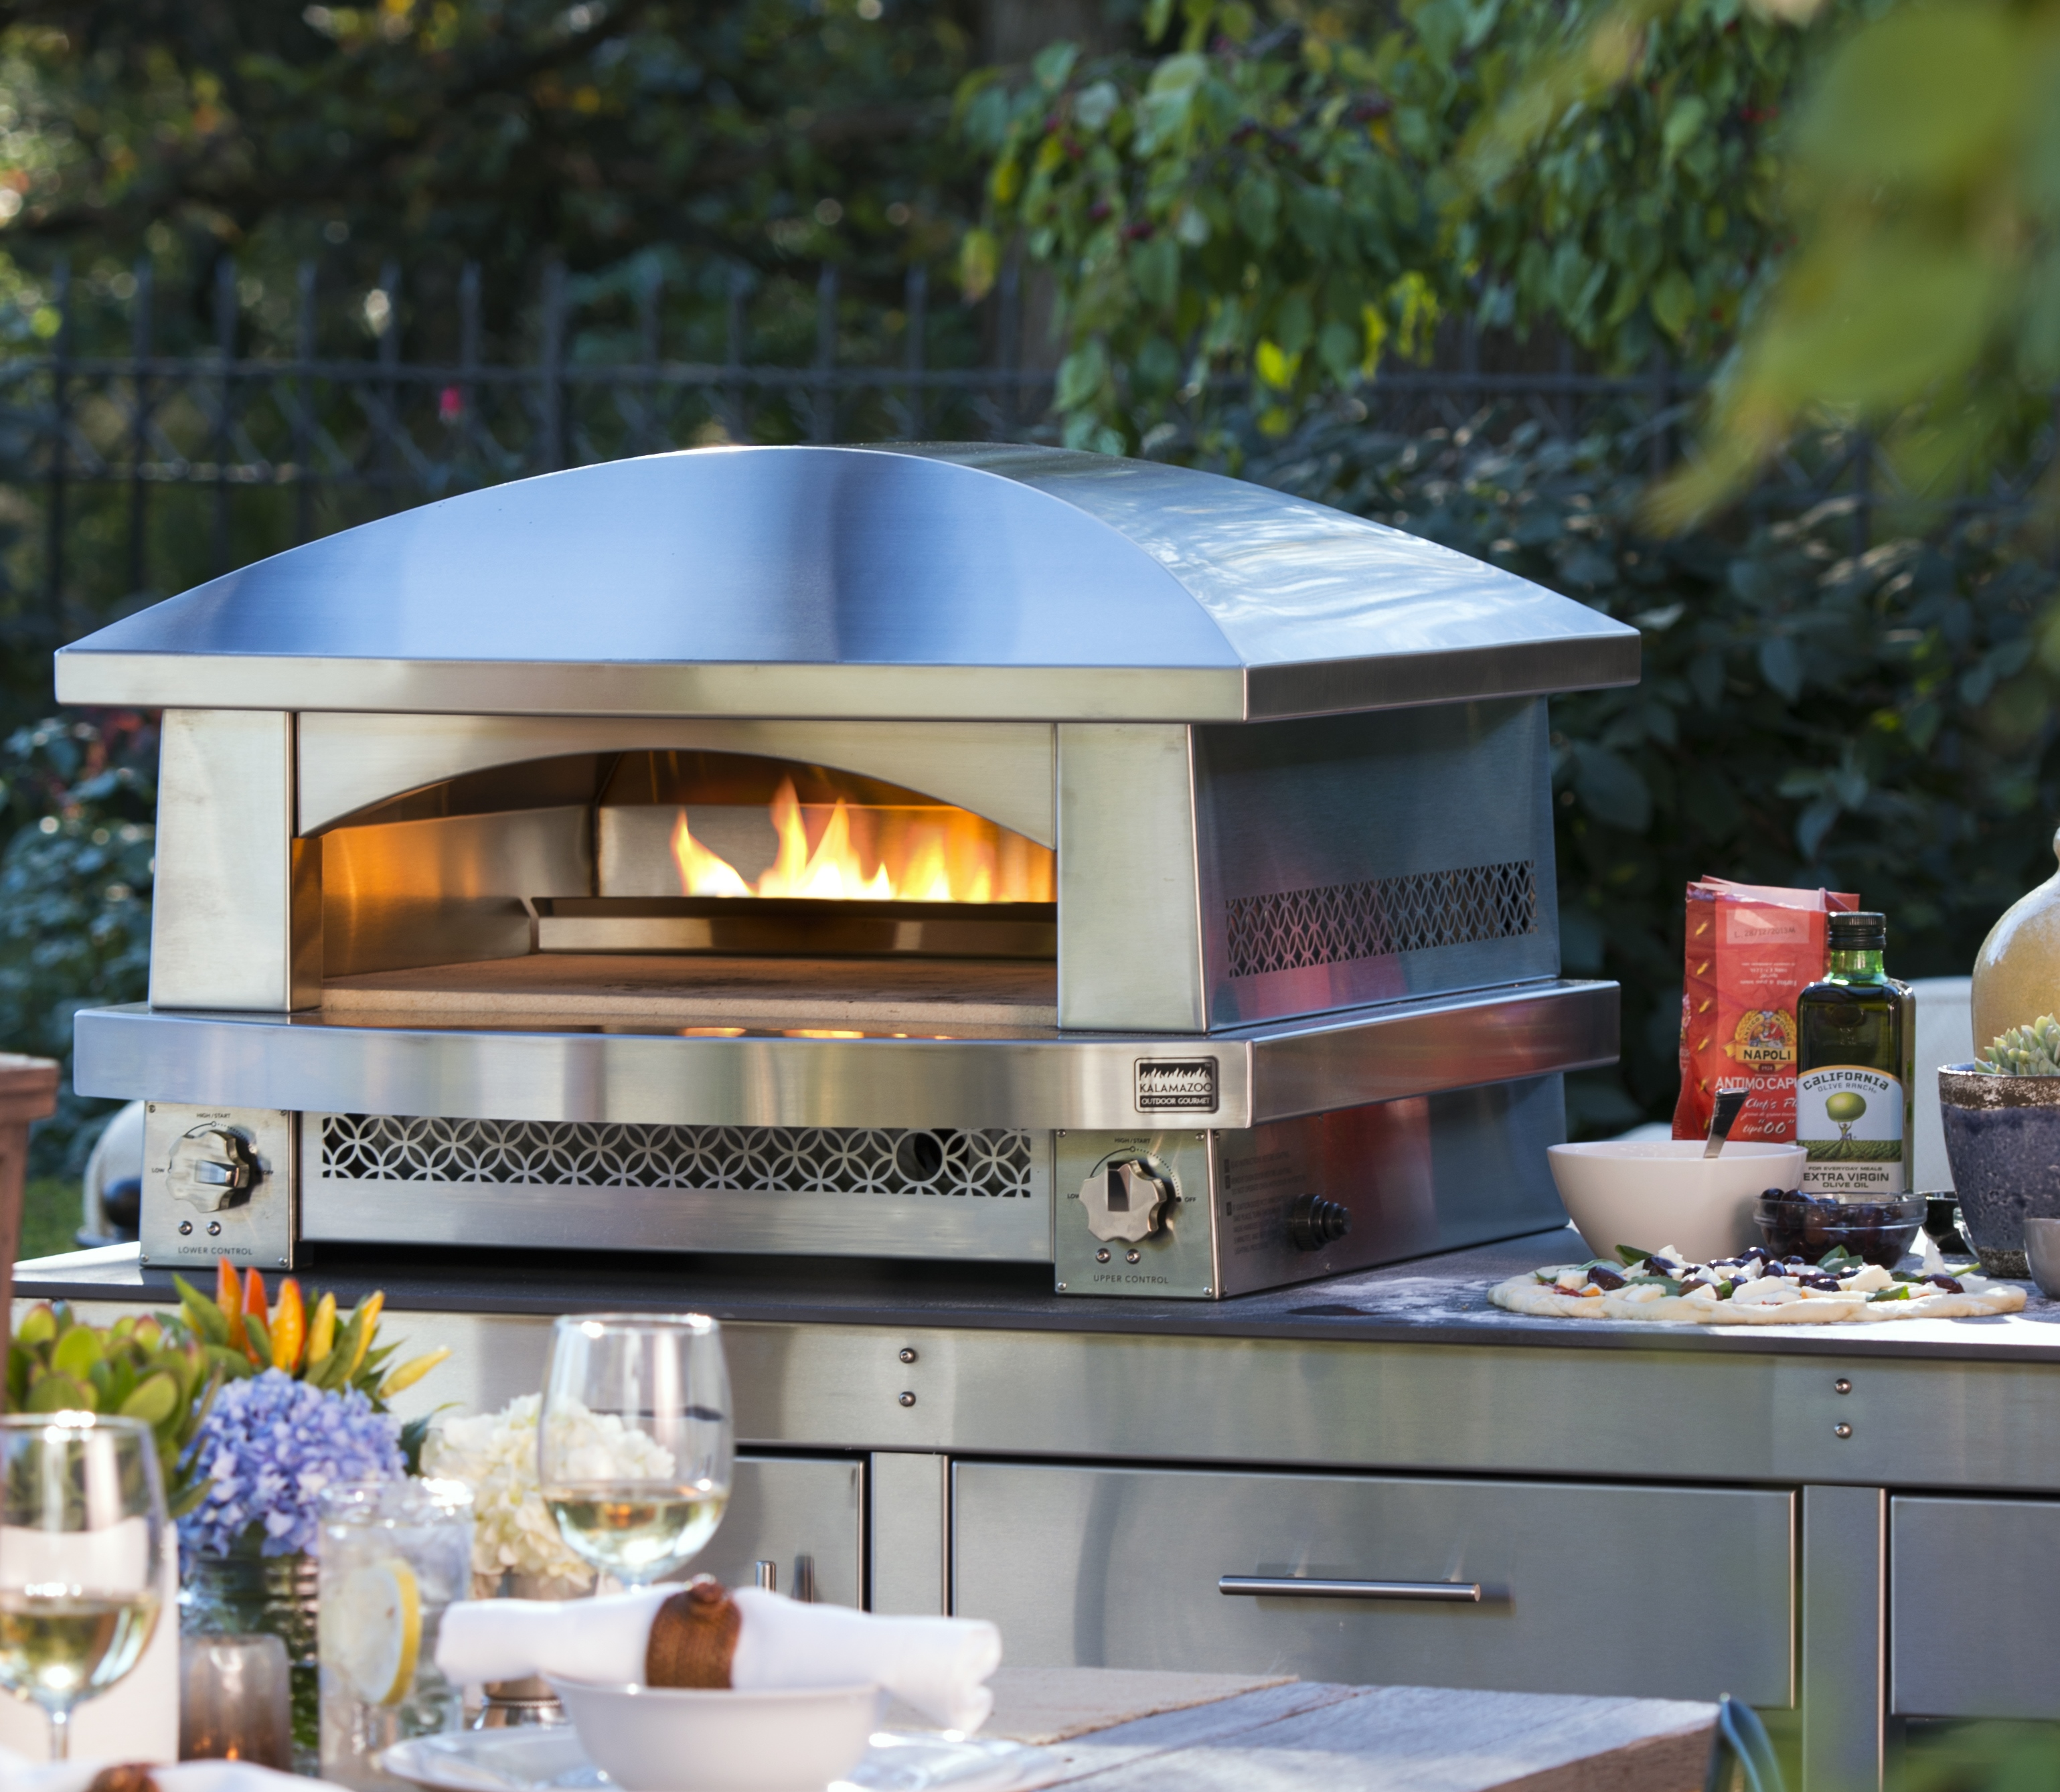 lorre white the guru of luxury artisan fire pizza oven for 2014